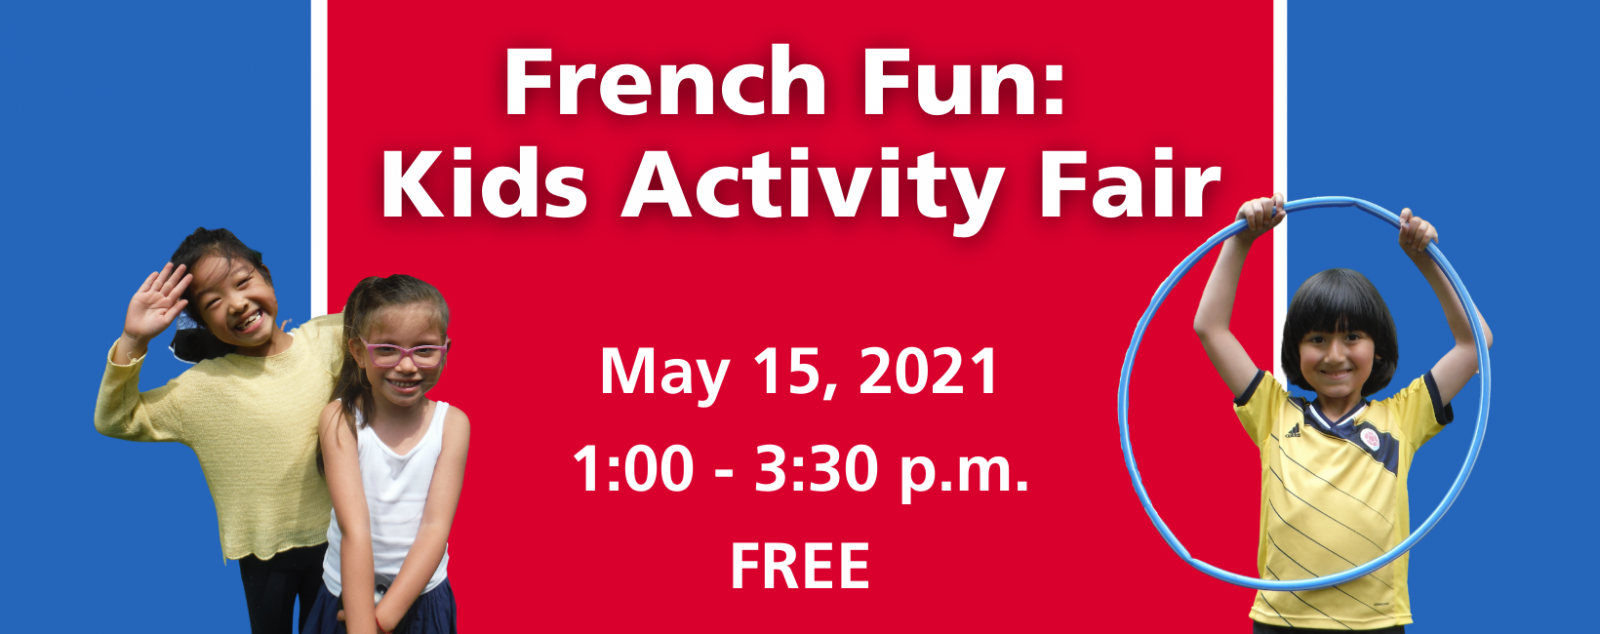 French Fun: Kids Activity Fair